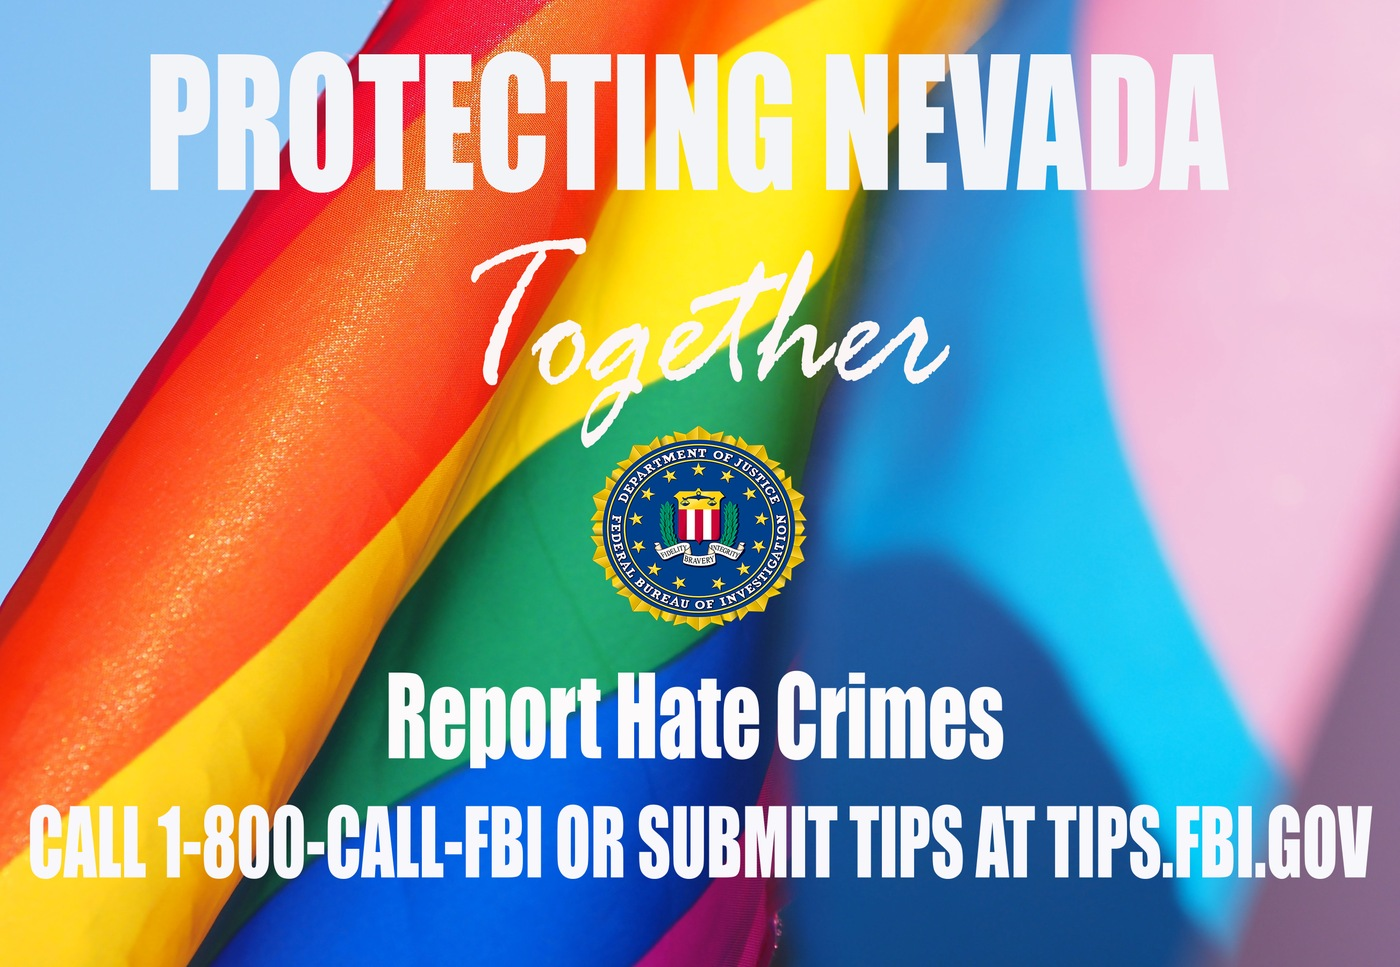 Image depicts Pride flag and FBI seal with the text: Protecting Las Vegas Together. Report Hate Crimes. Call 1-800-CALL-FBI or submit tips at tips.fbi.gov.